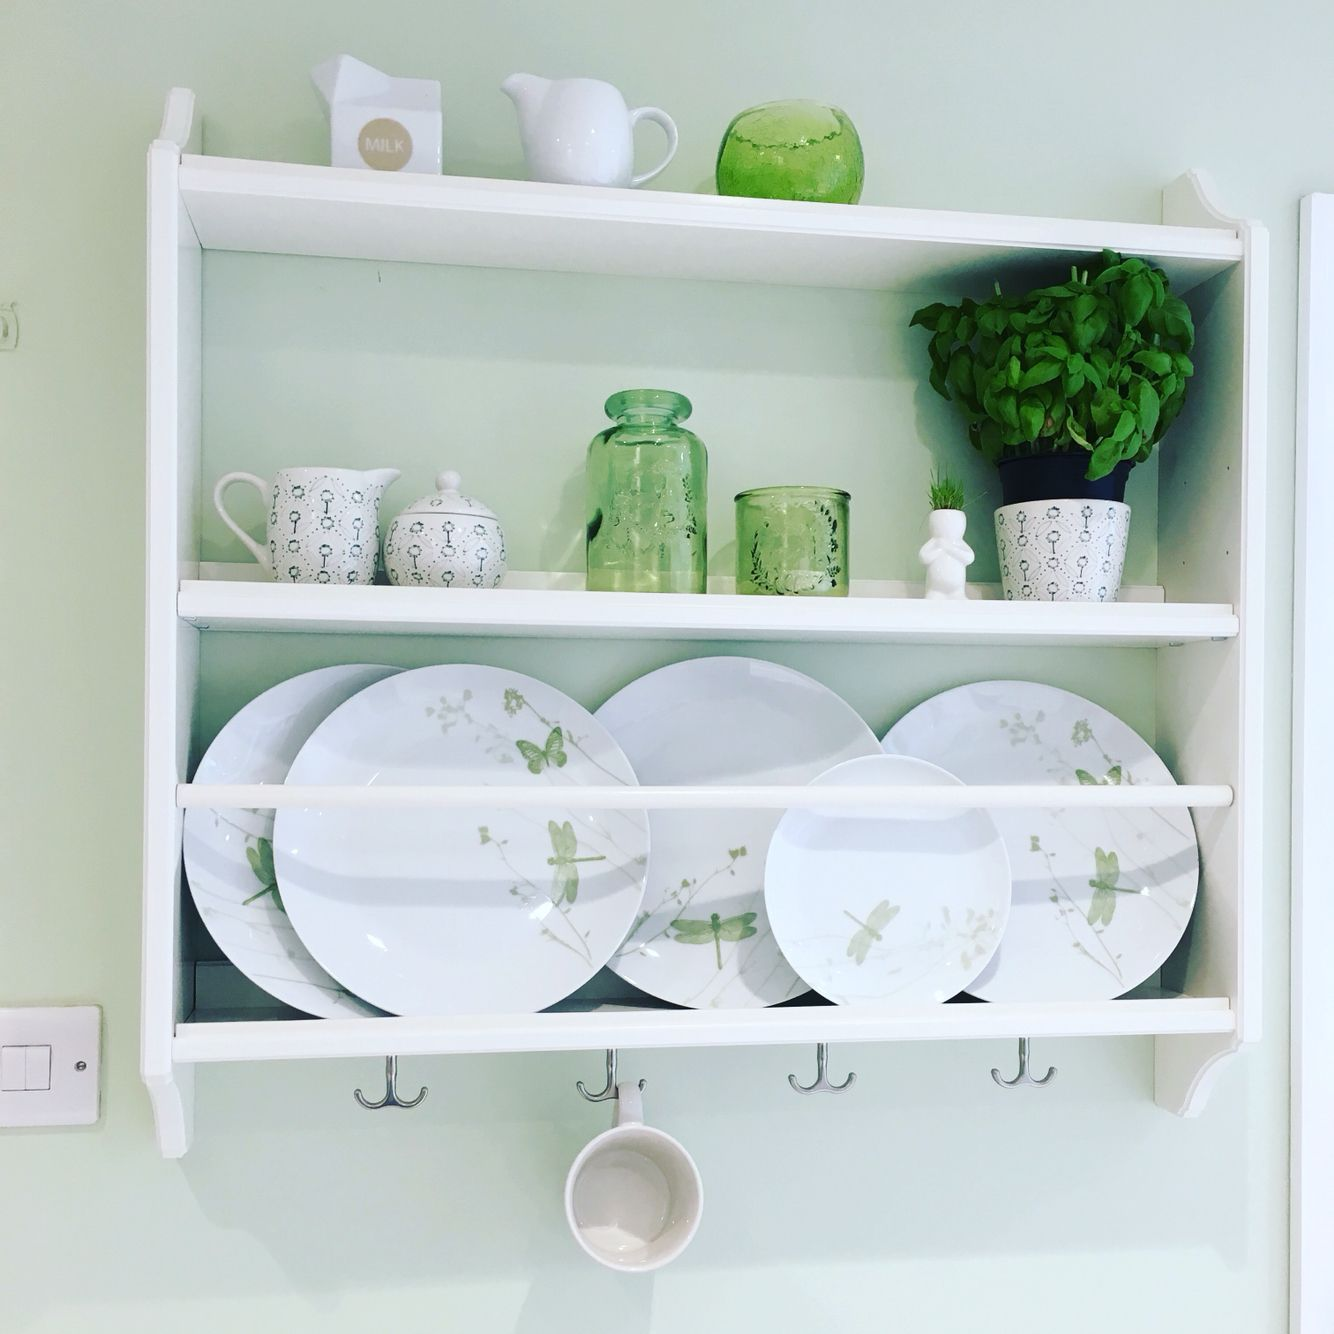 Ikea Küchen Stenstorp Stenstorp Ikea Plate Rack In A Green And White Kitchen